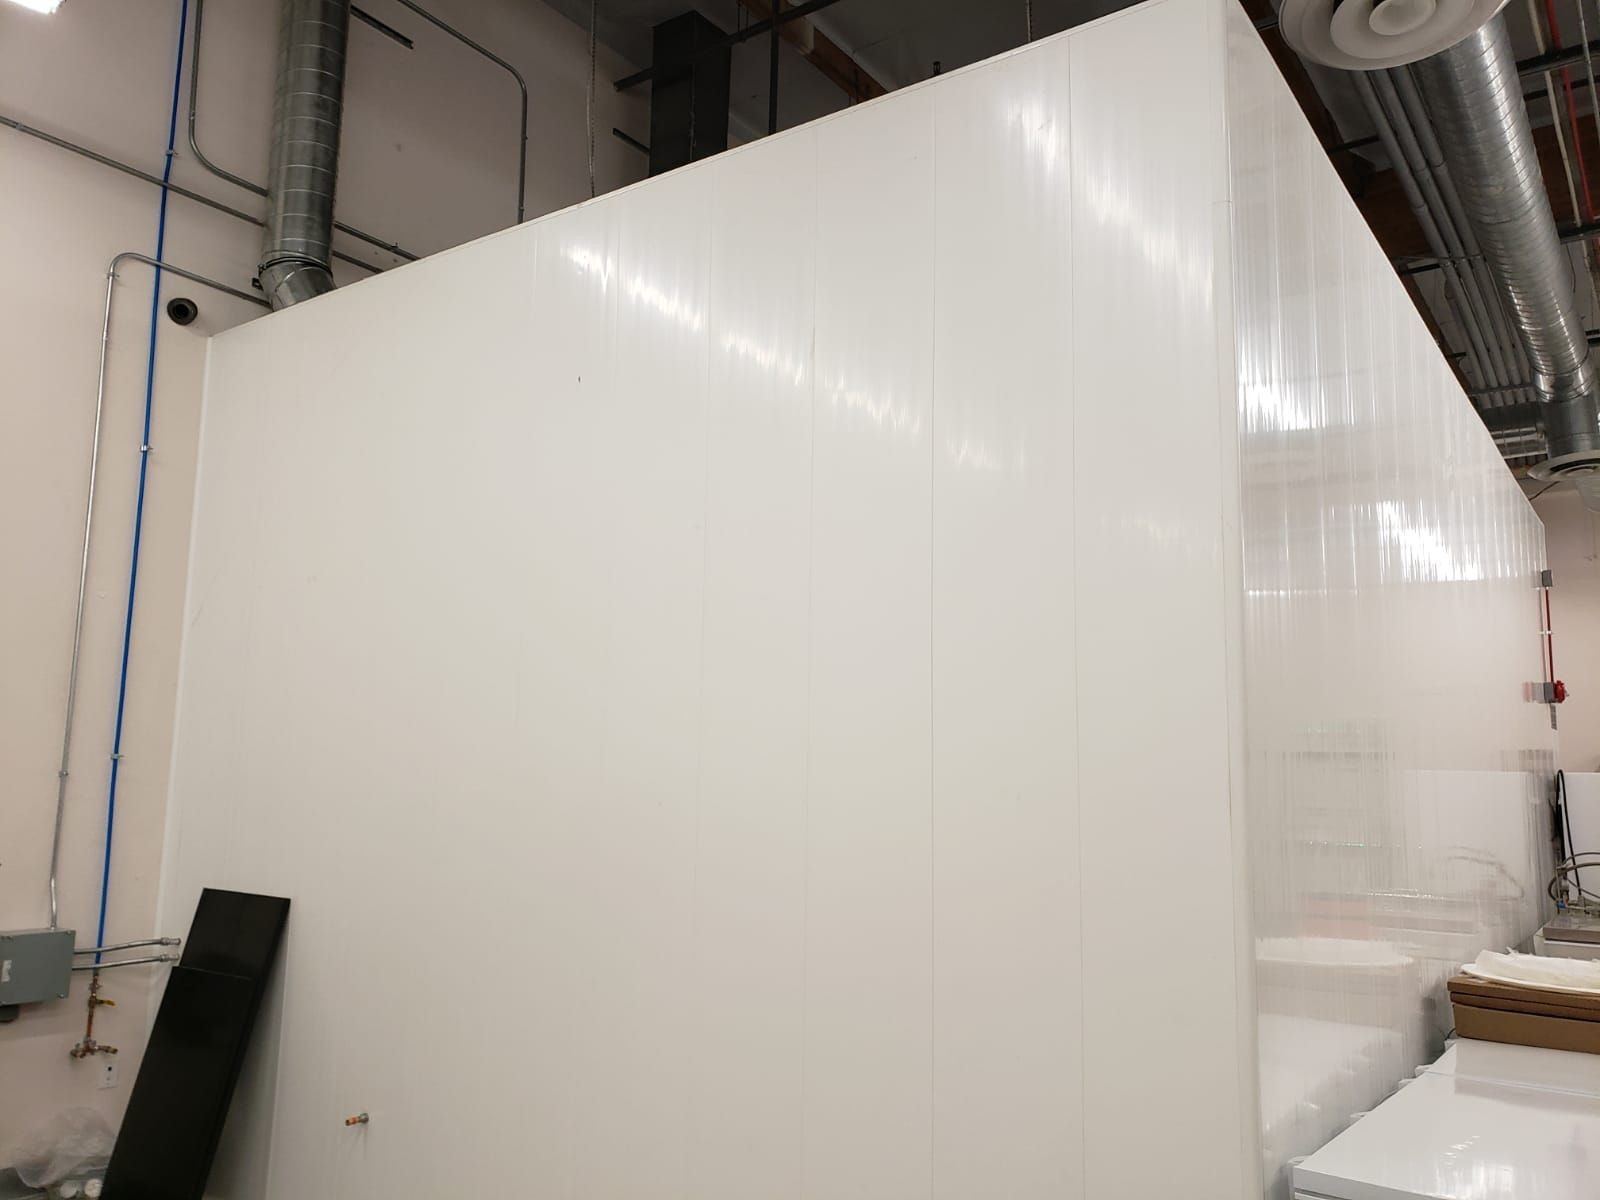 Get Good Quality Vinyl Wall Paneling Right Here At Duramax Vinyl Wall Panels Pvc Wall Panels Vinyl Panels